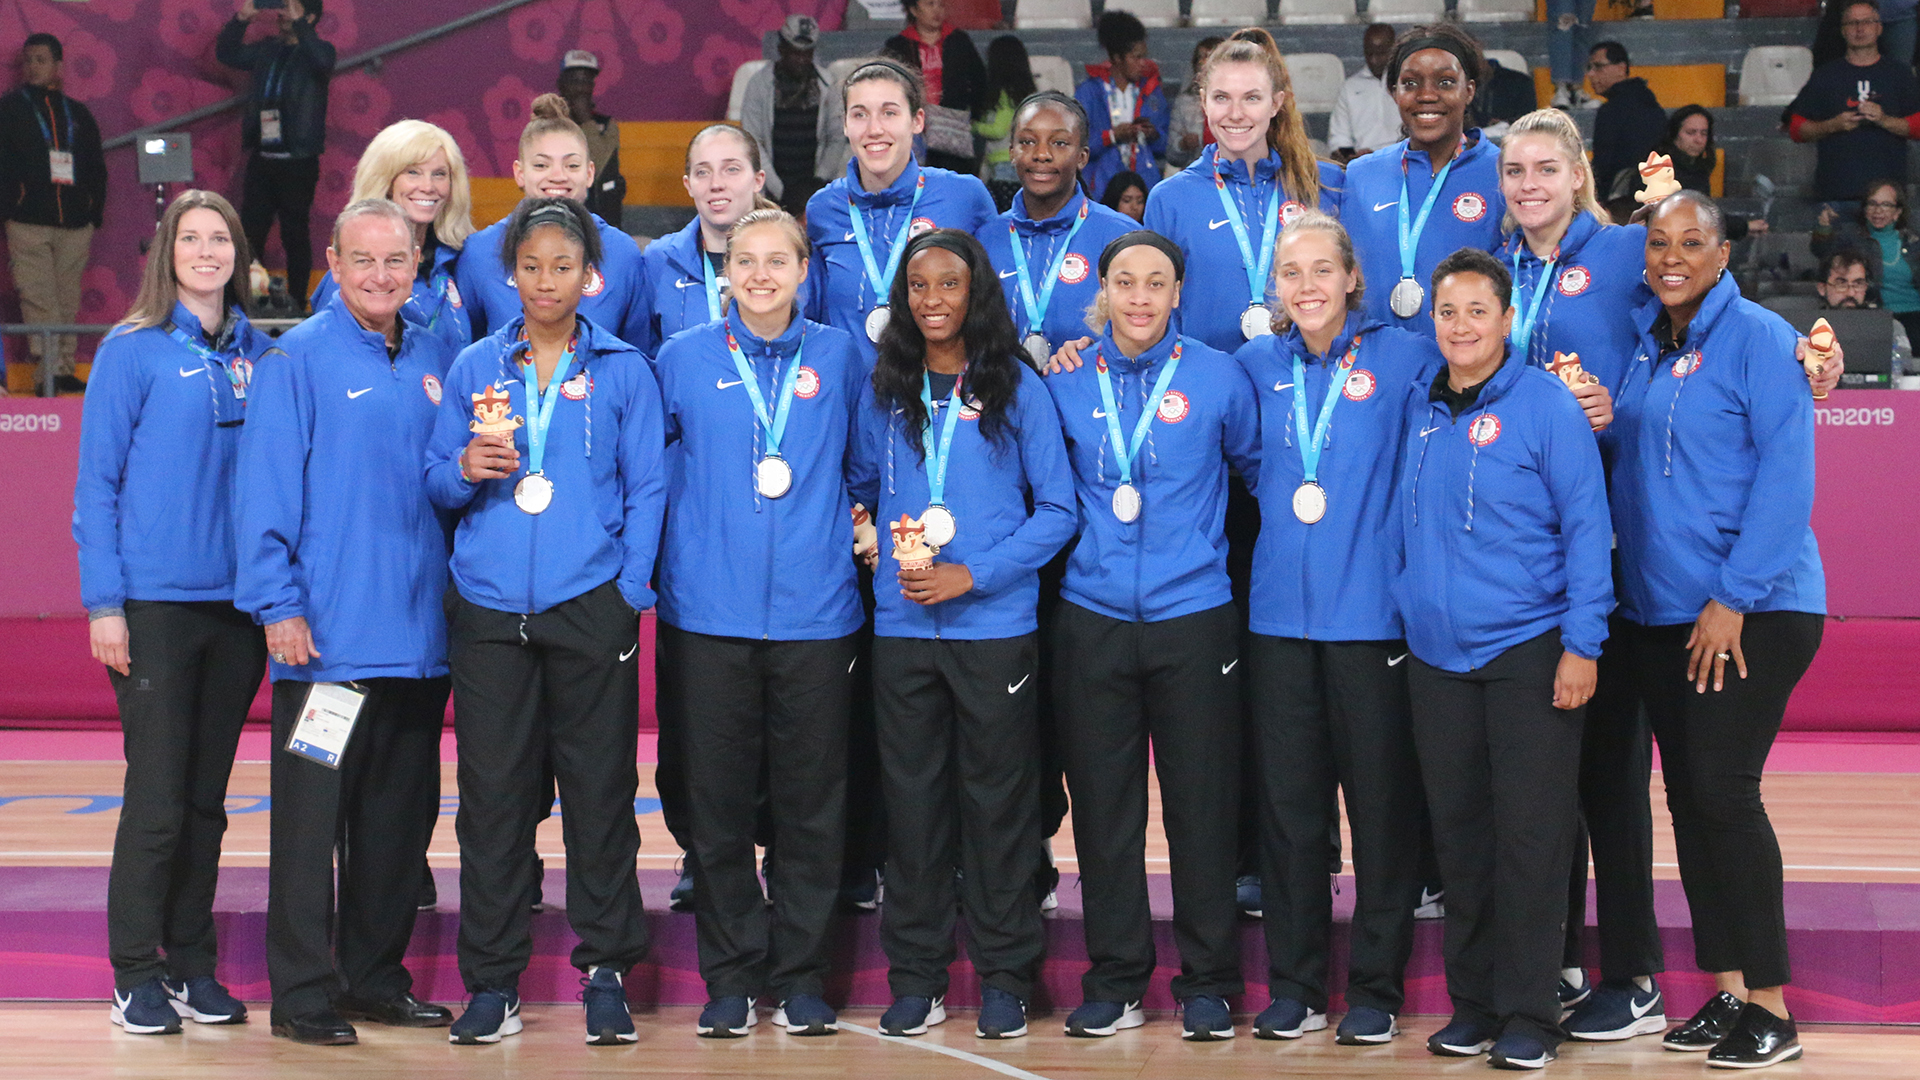 Brazil at the 2019 Pan American Games